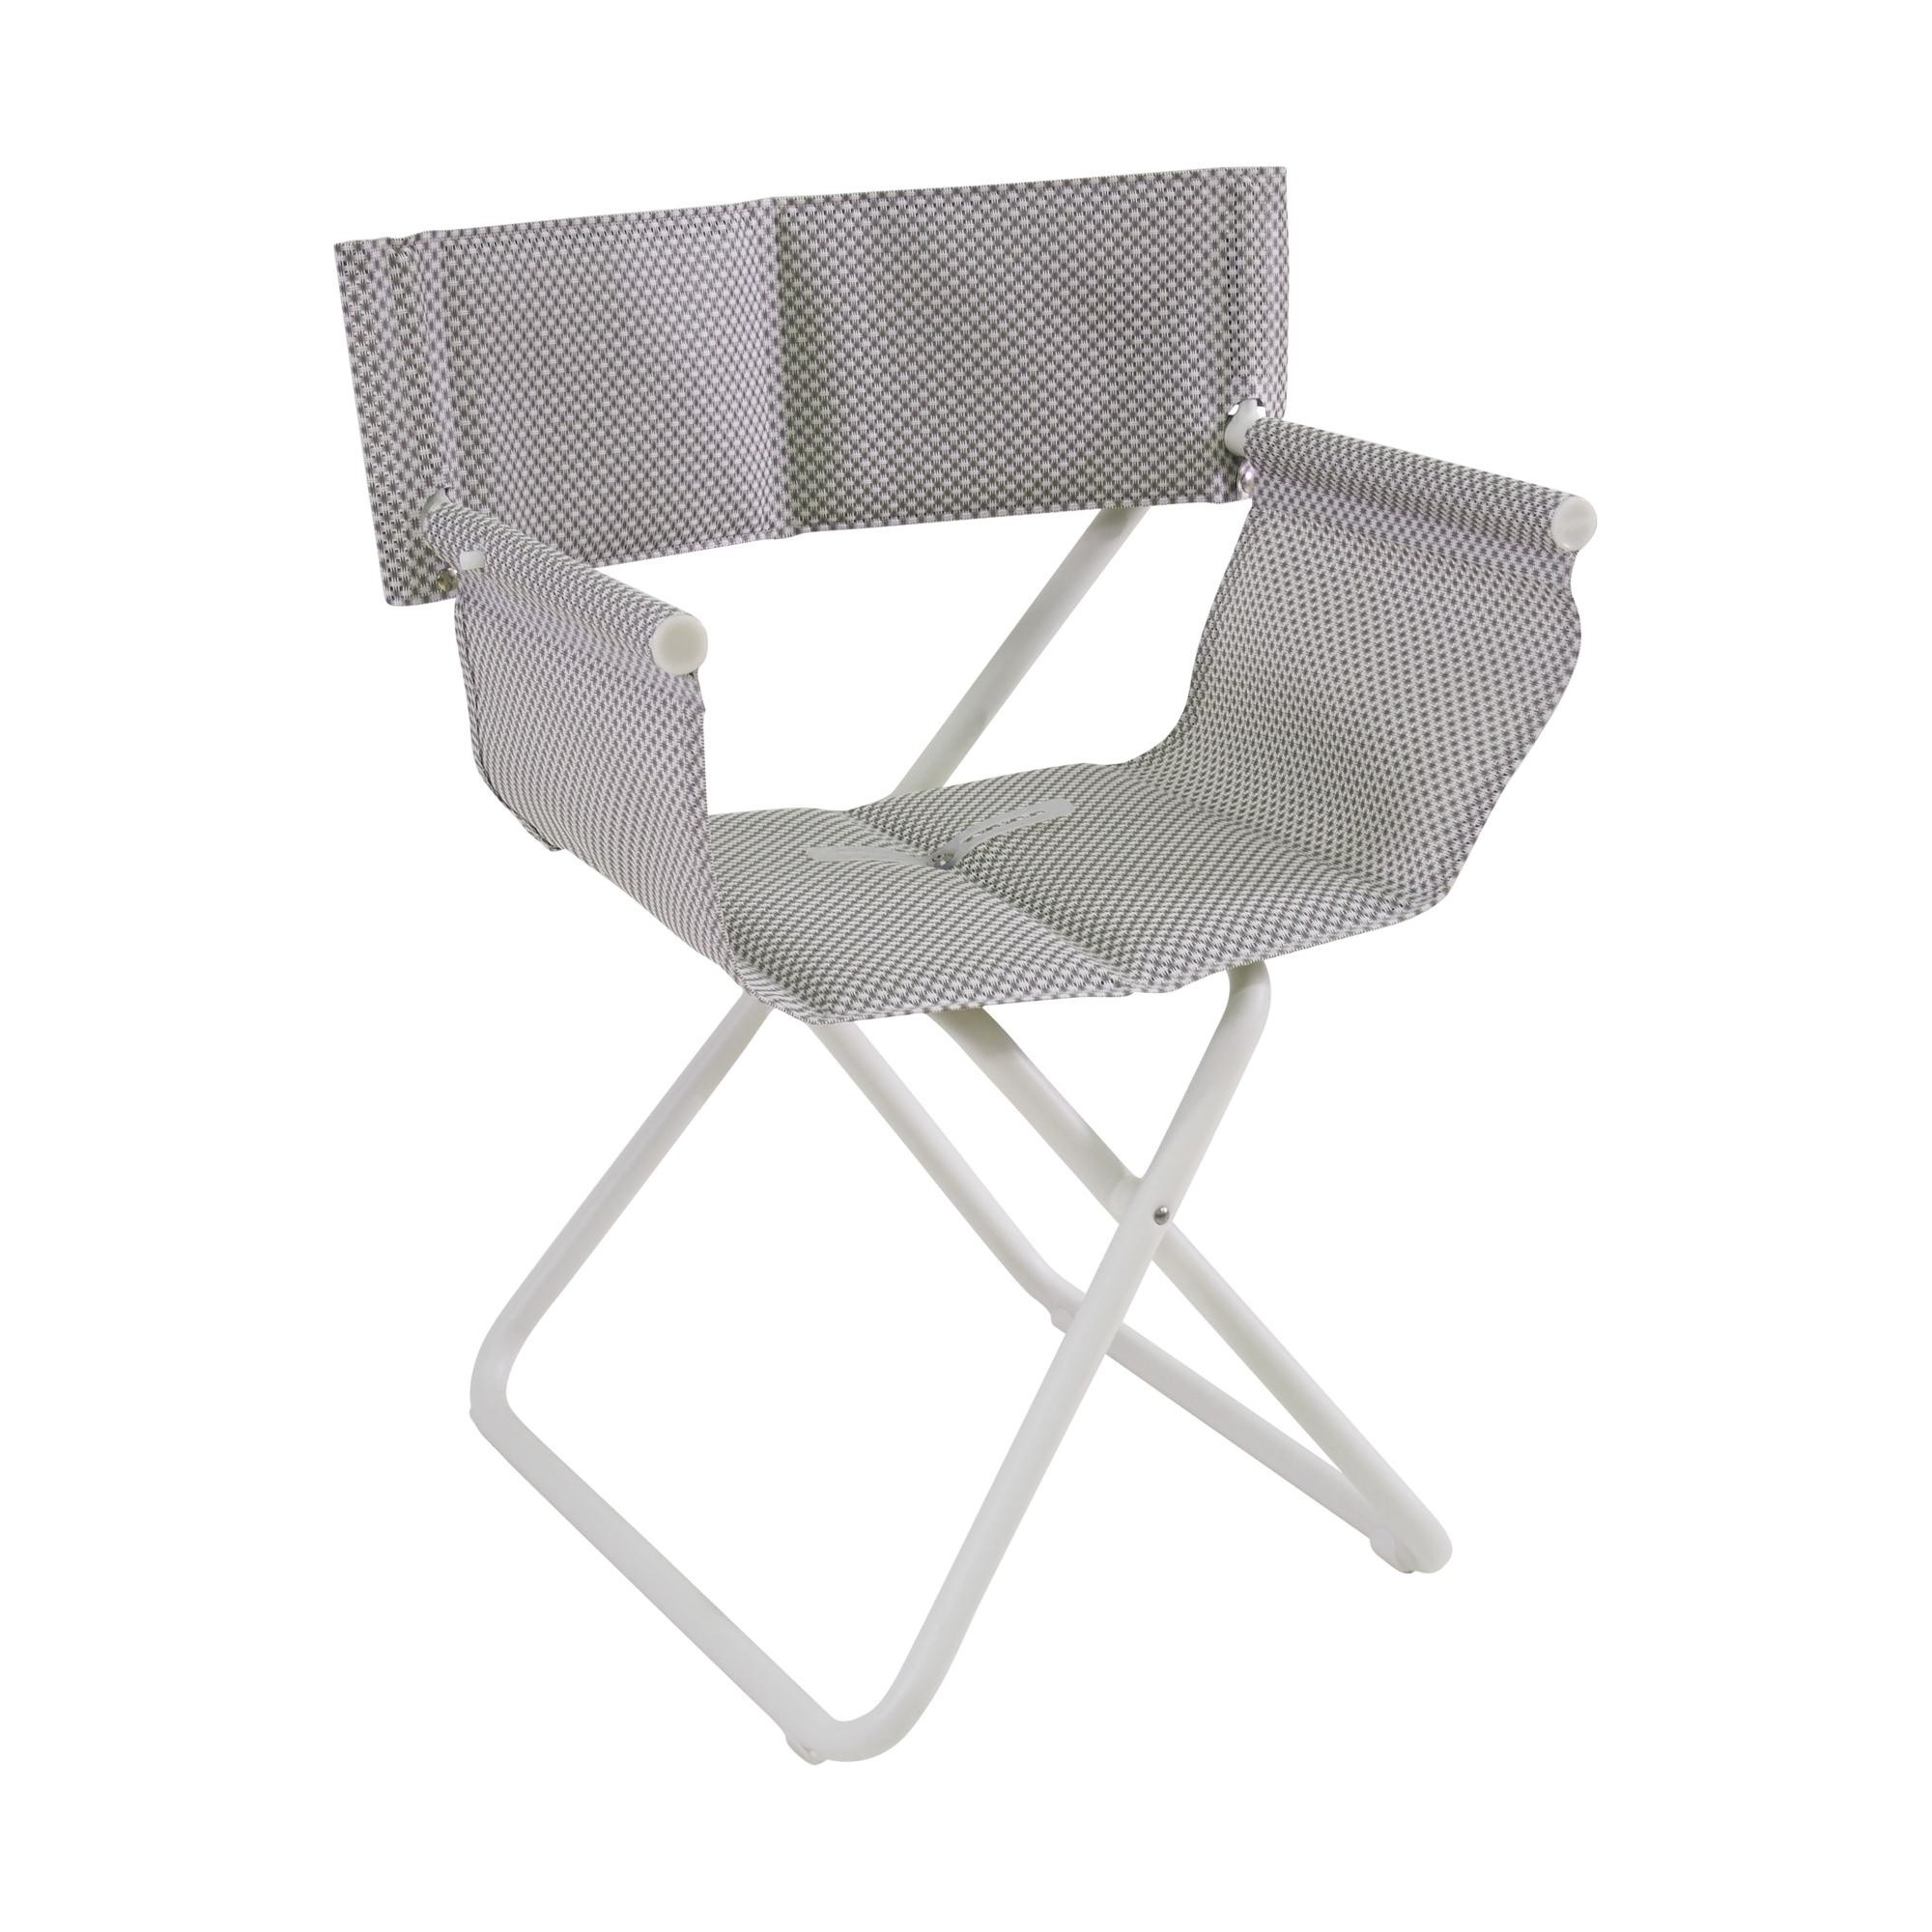 directors chair white ikea poang covers australia emu snooze outdoor director s ambientedirect ice grey seating